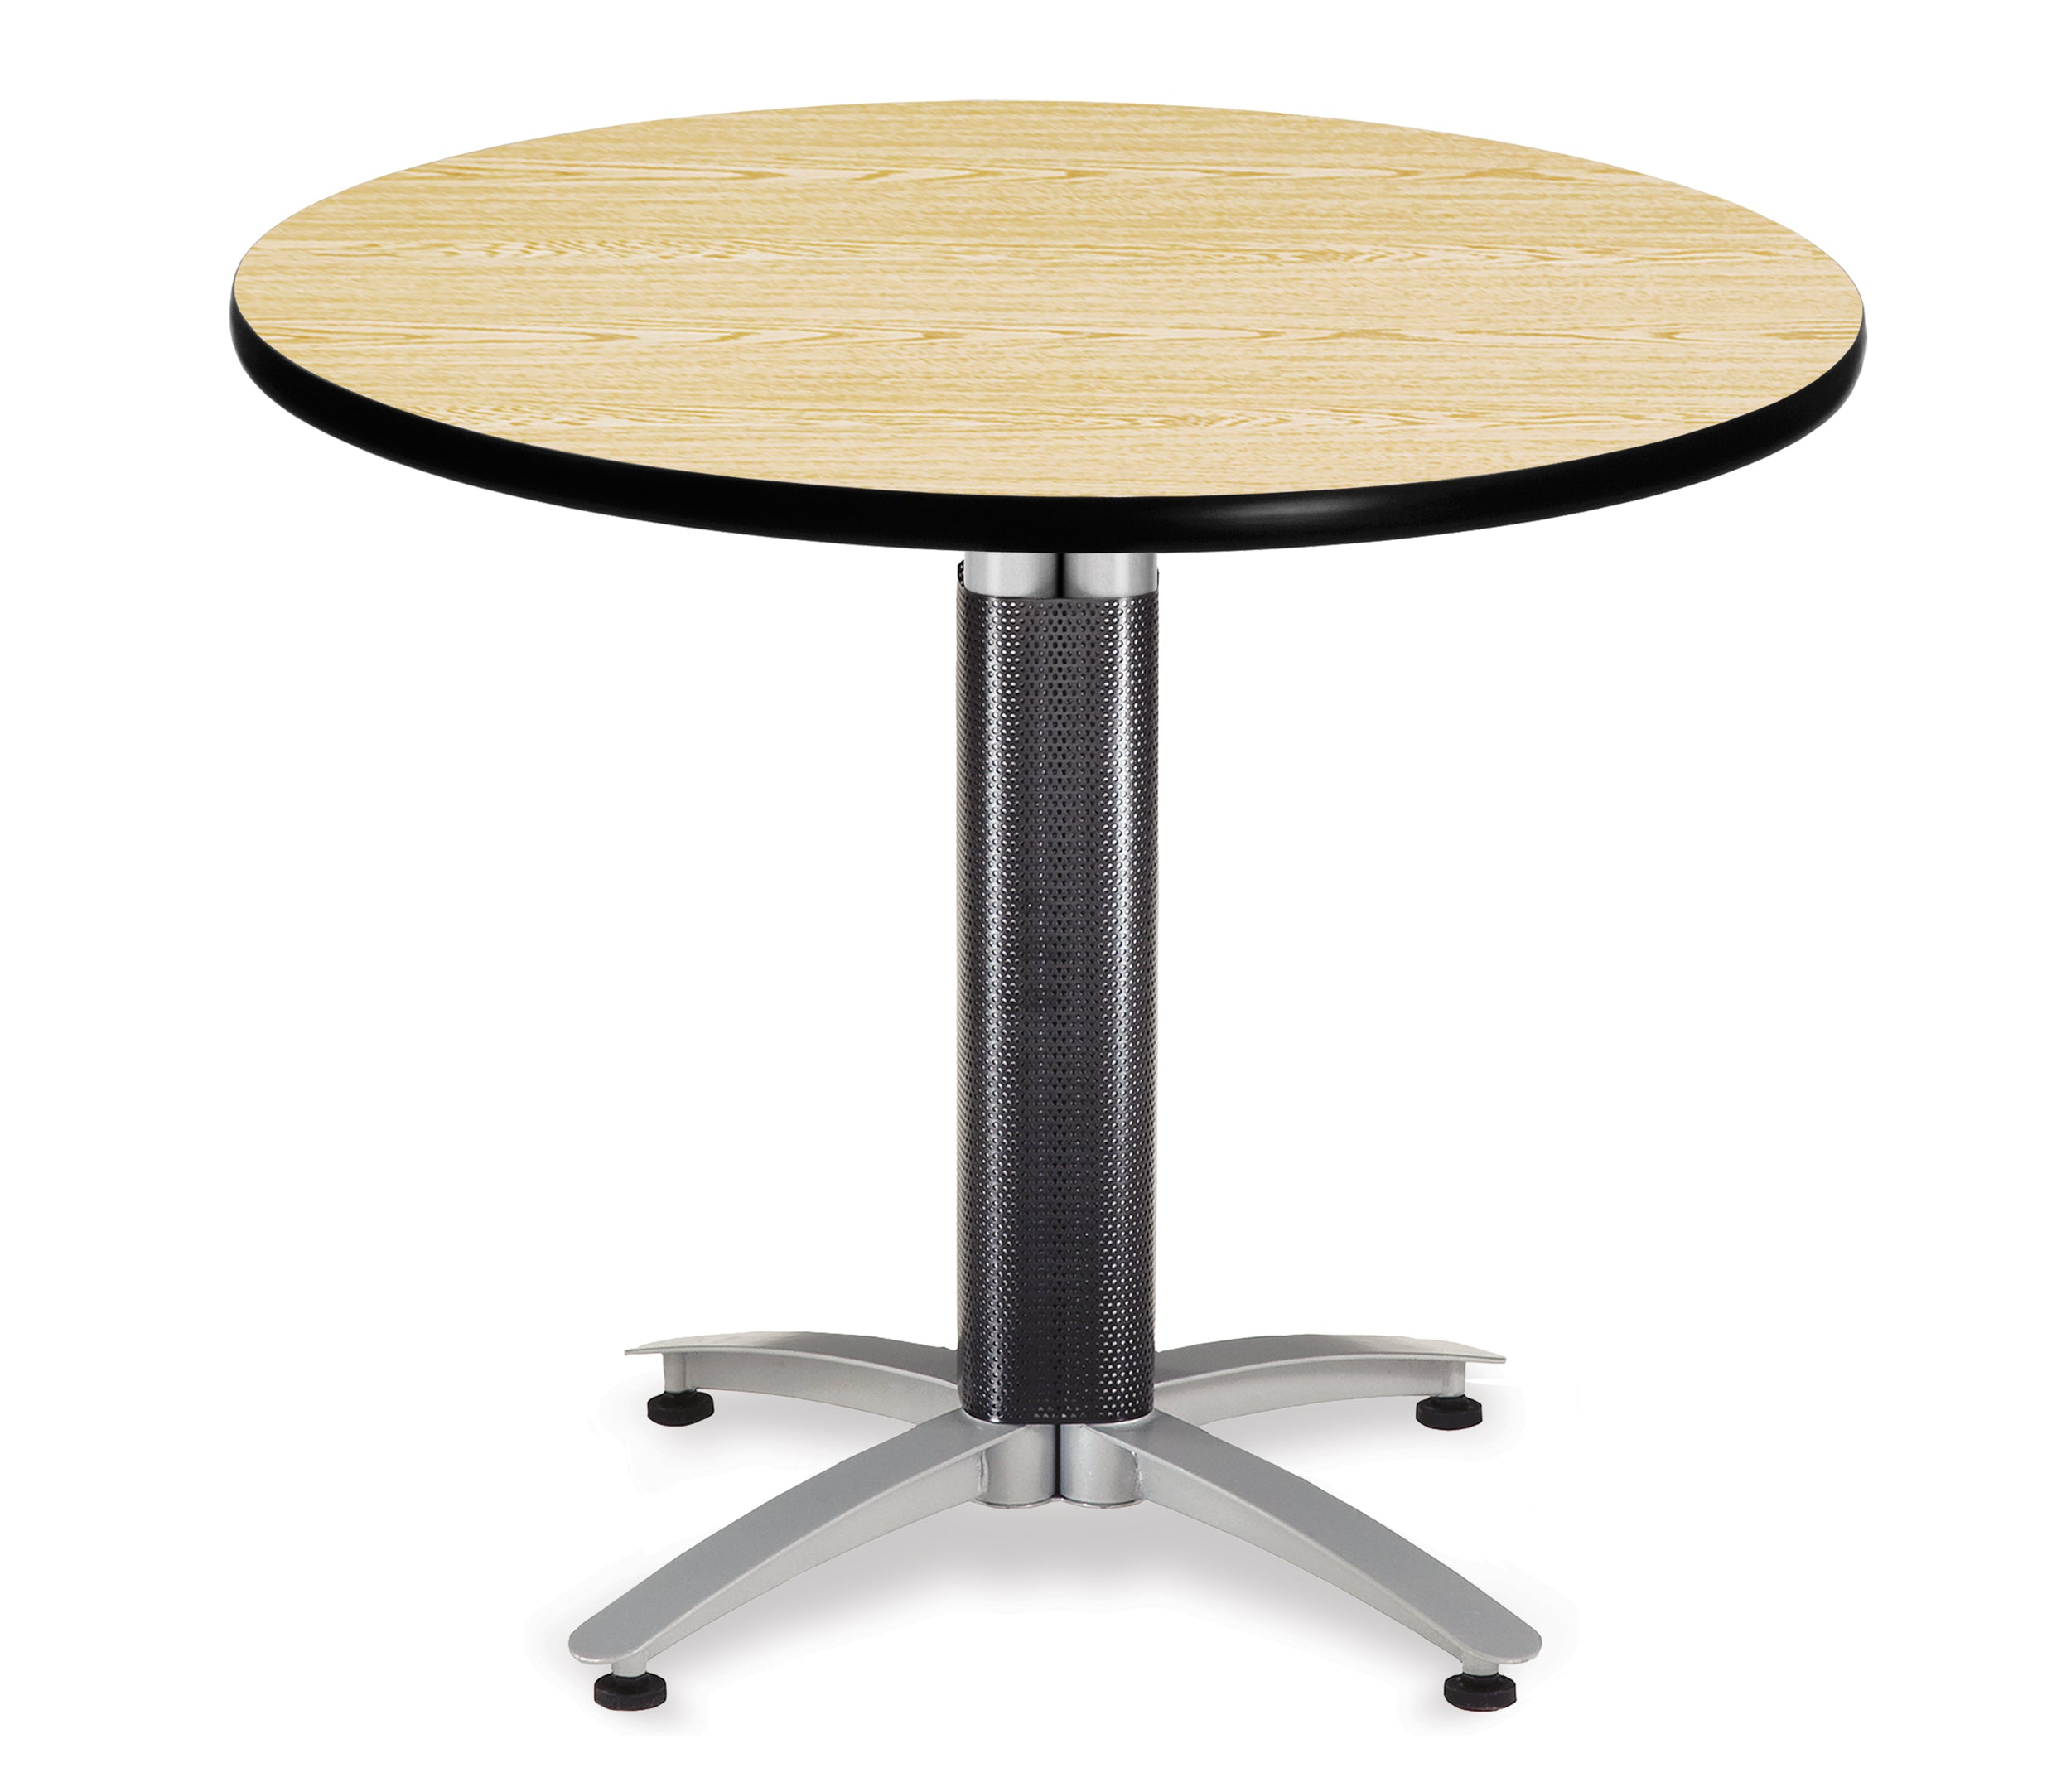 Ofminc Model MT36RD 36 Inch Multi-Purpose Round Table